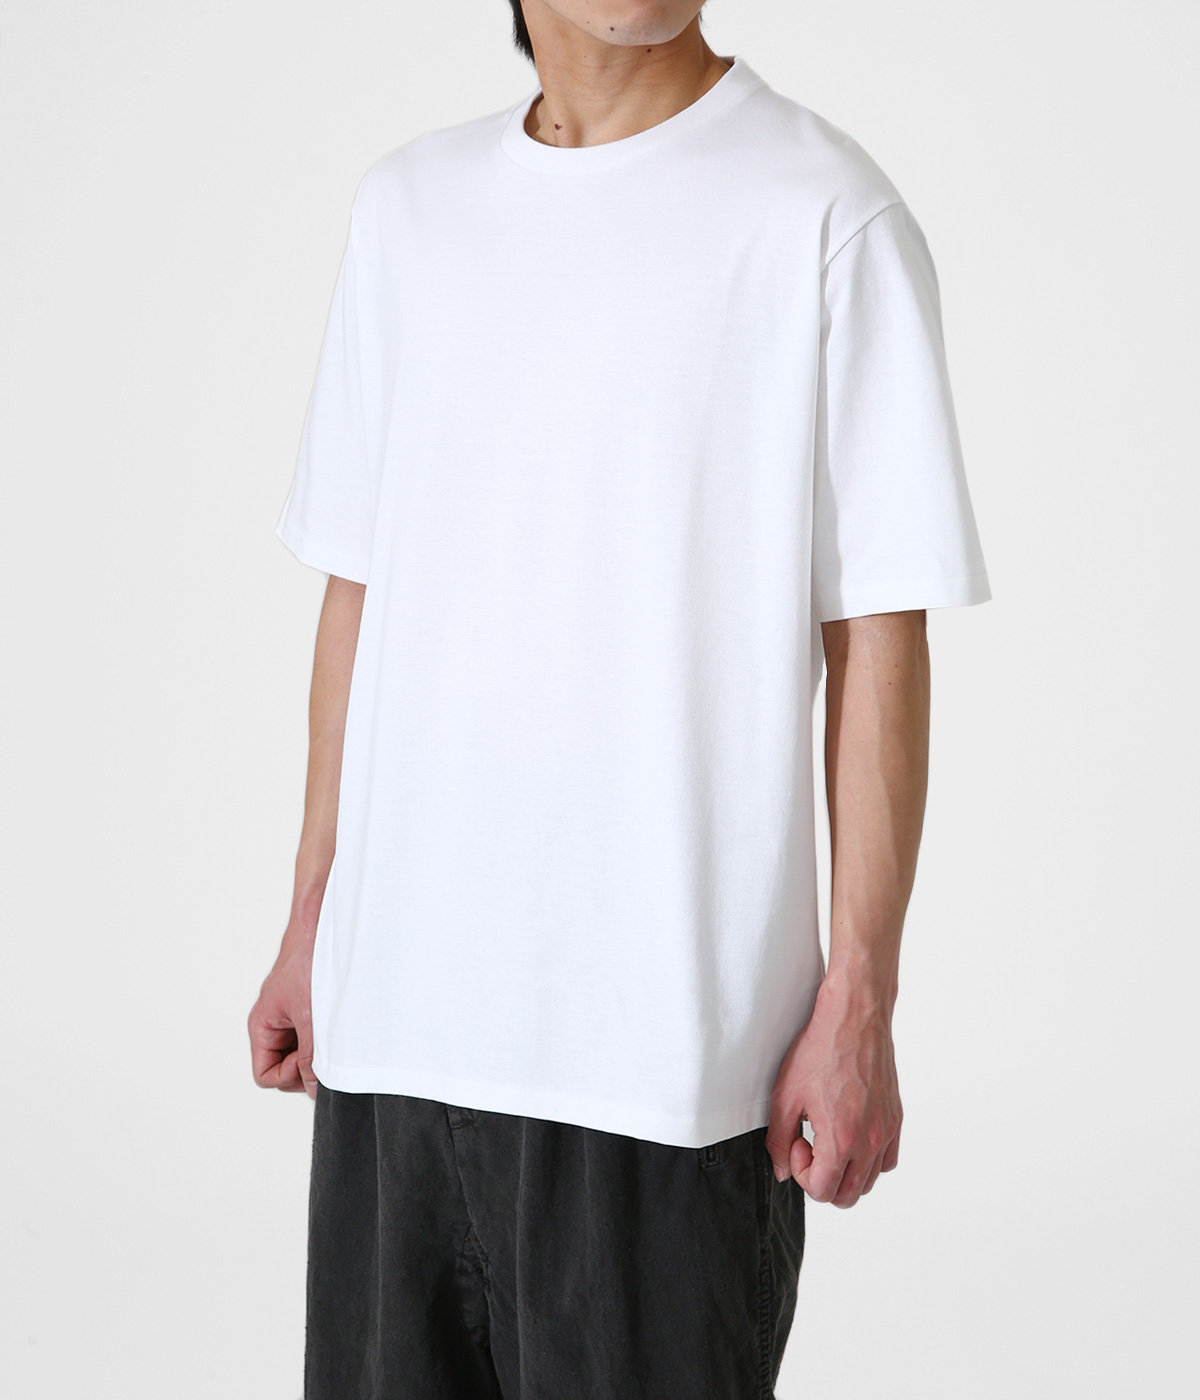 【予約】PACK T-SHIRT(DEGREASE COTTON)